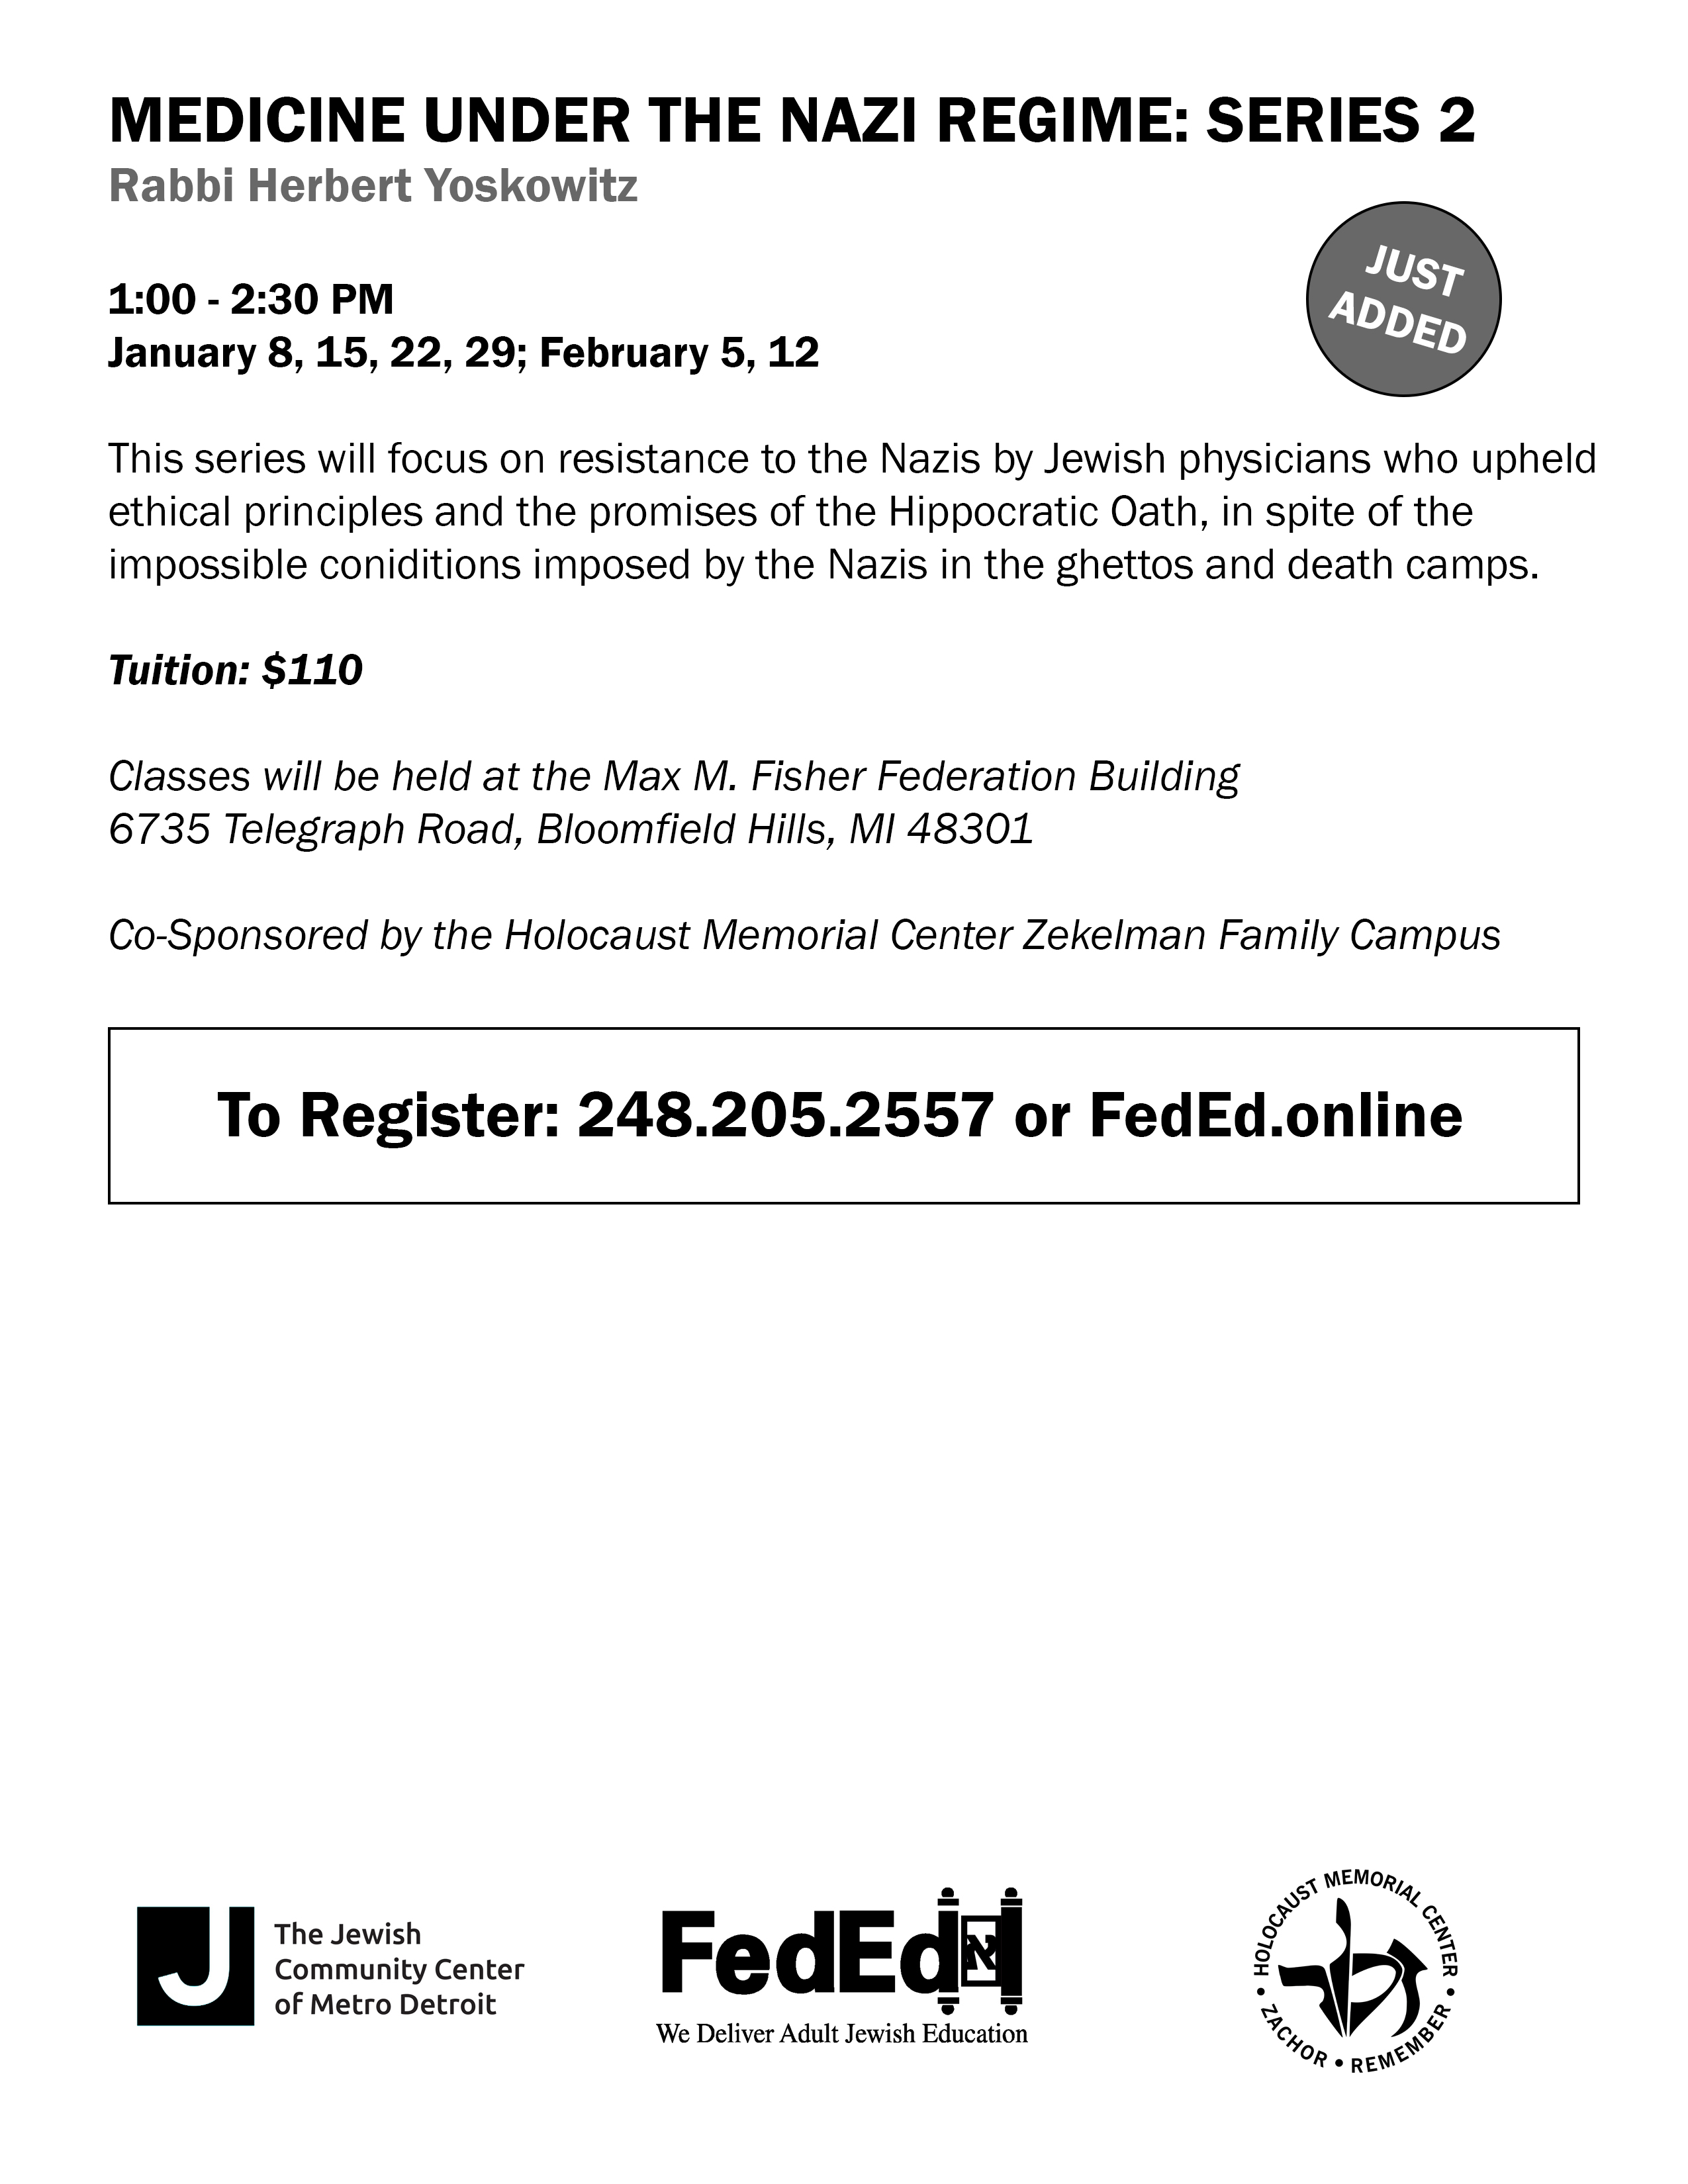 Medicine Under the Nazi Regime: Series 2 FedEd Class @ Max M. Fisher Federation Building